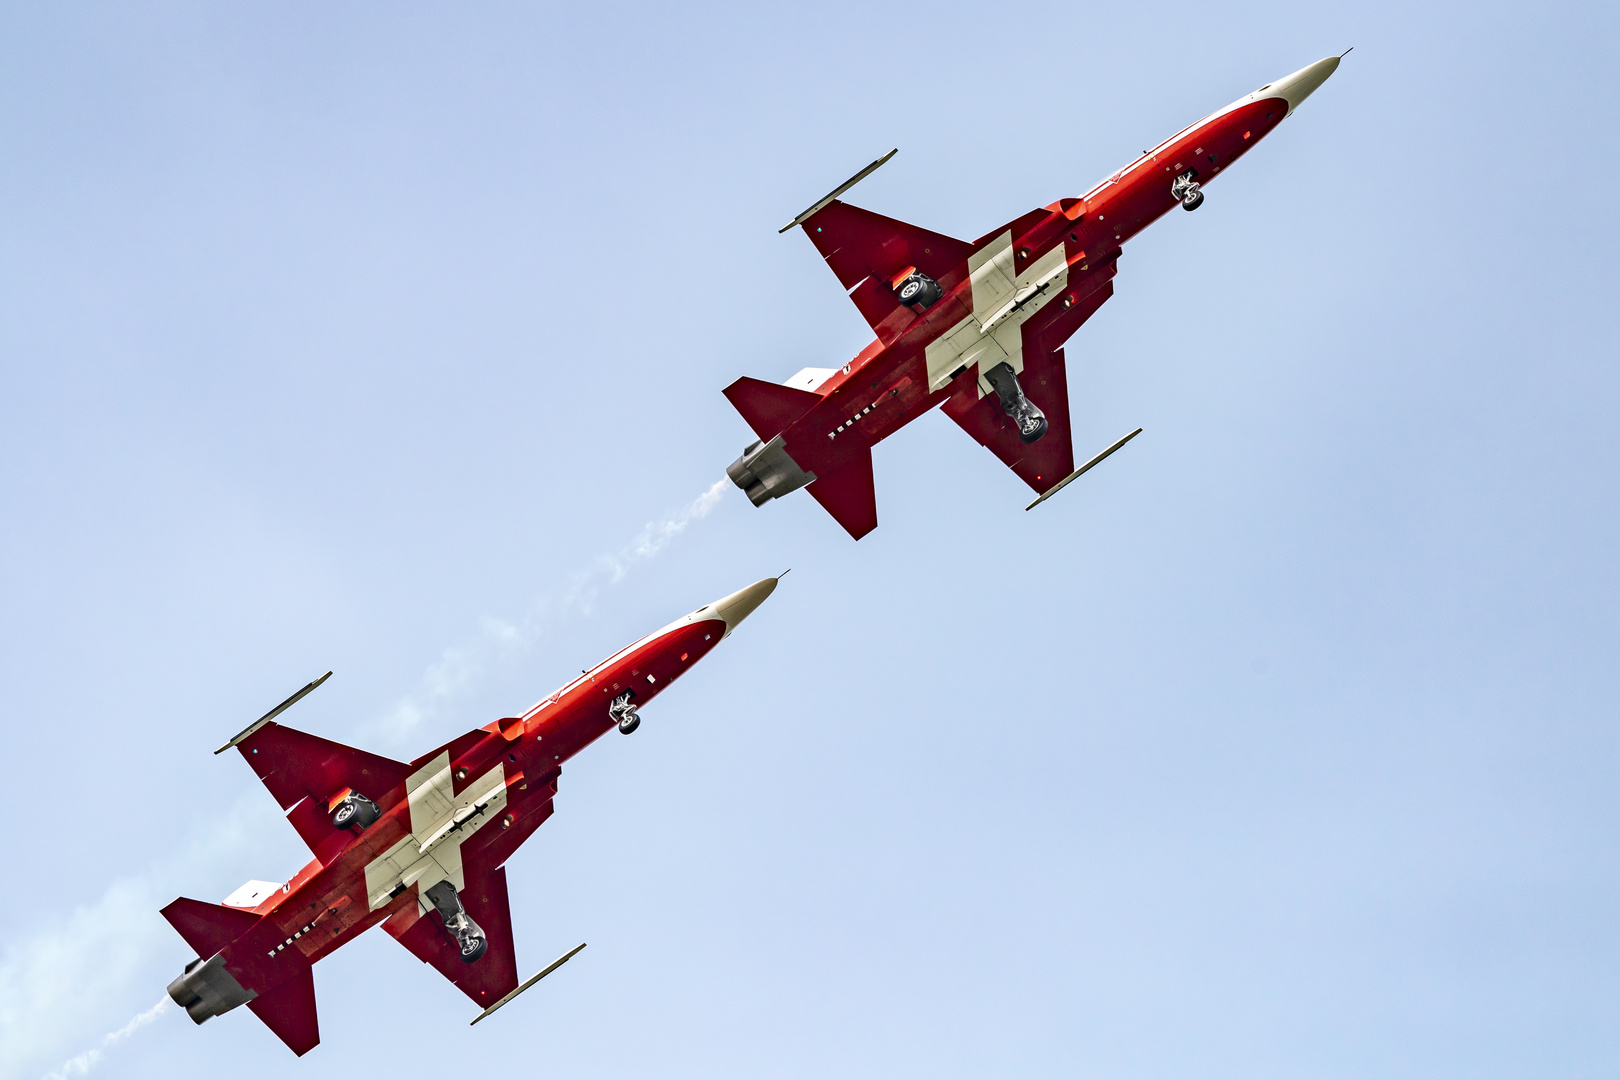 Emmen, Air Base, Patrouille Suisse, F-5E Tiger II